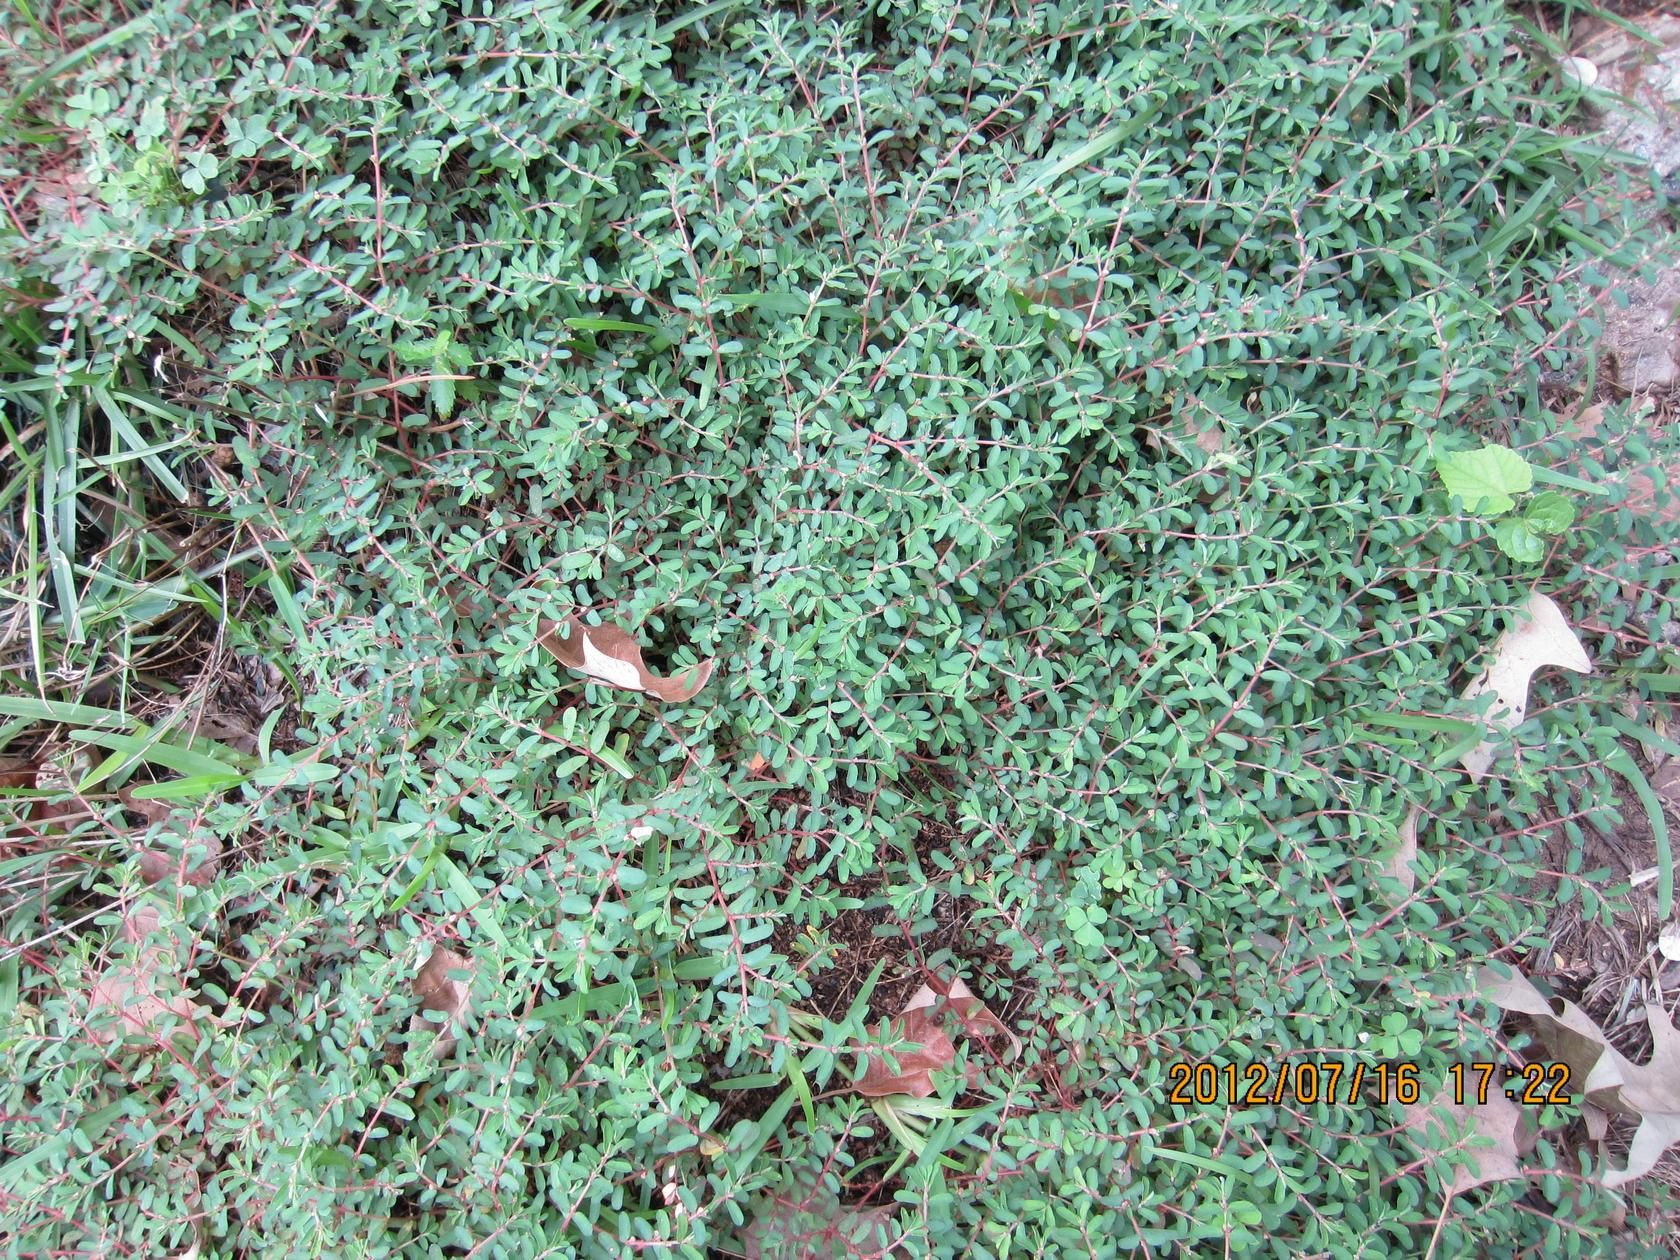 Weeds in flower beds identify - Texas Grass Weed Identification Want To Be Able To Indentify Plants With Your Mobile Phone